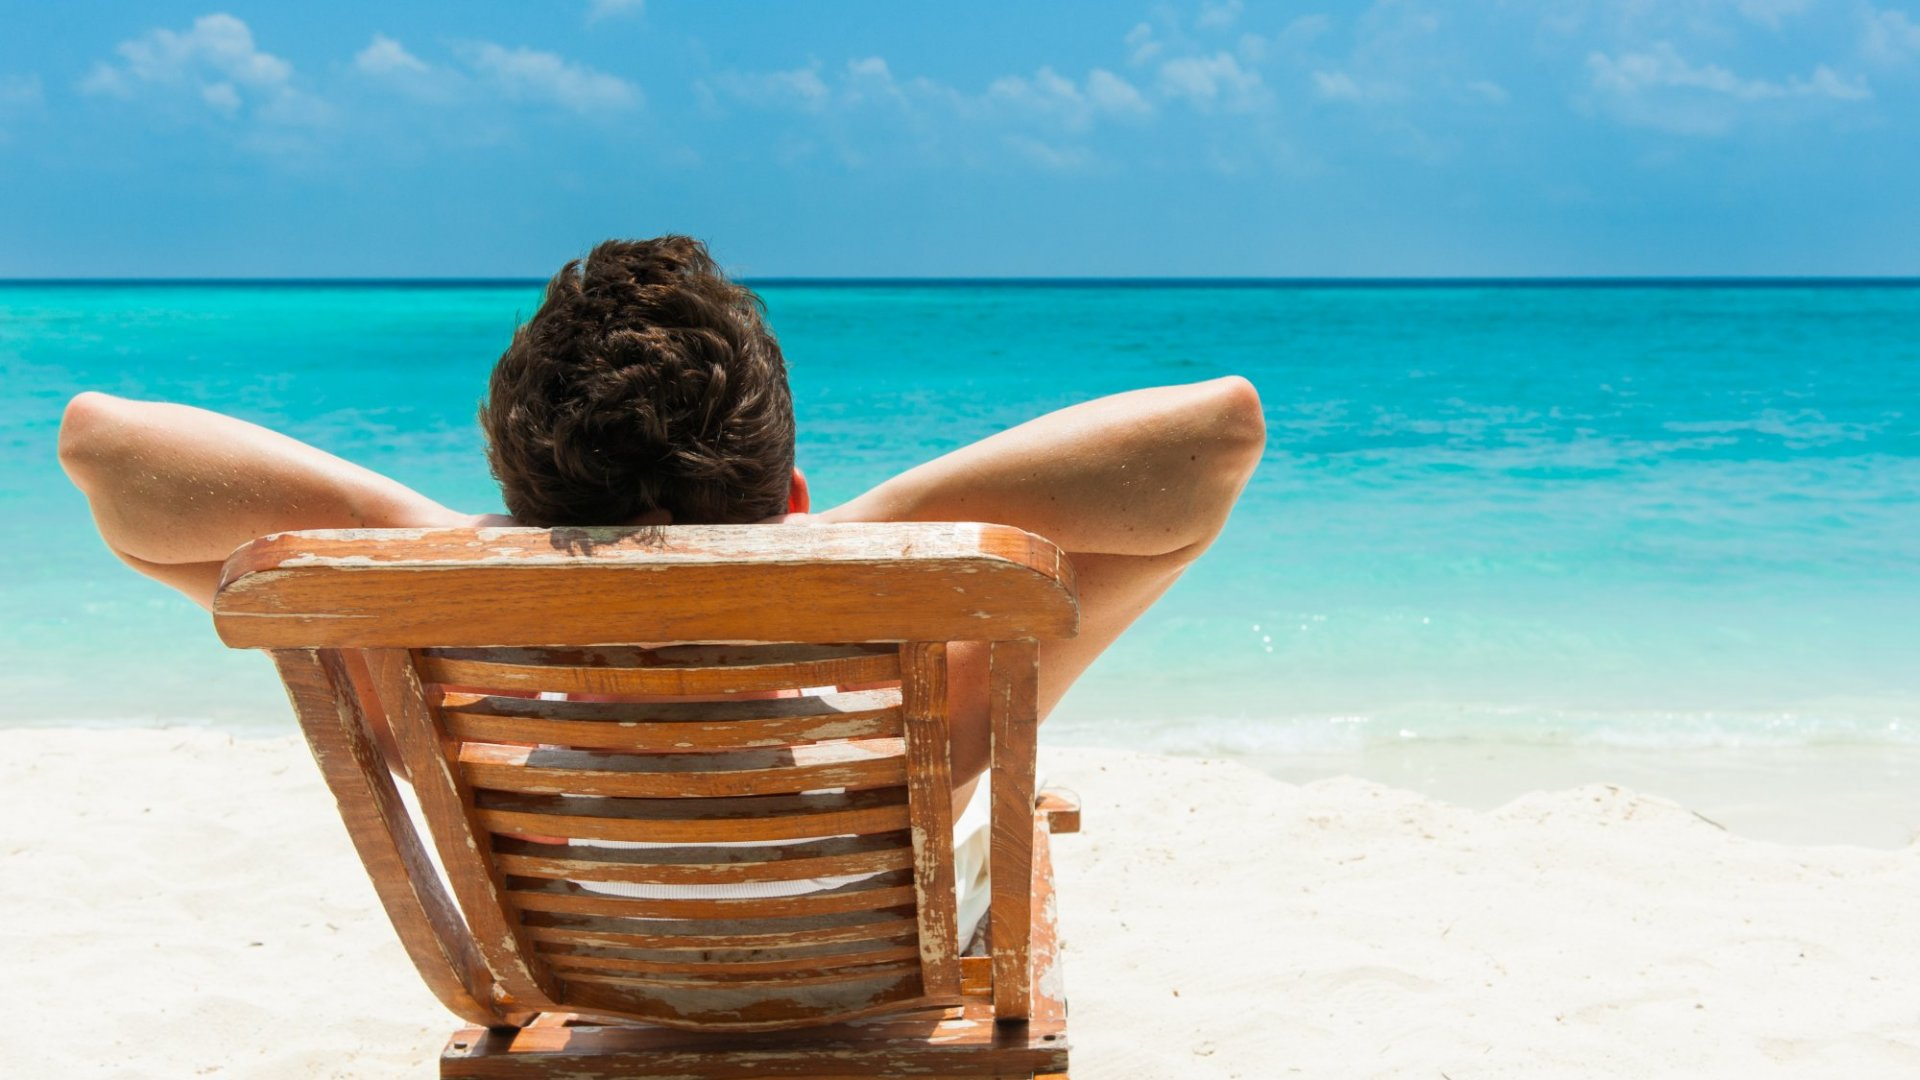 Check Off These 7 Pre-Vacation 'To-Dos' to Keep Your Business Running Smoothly